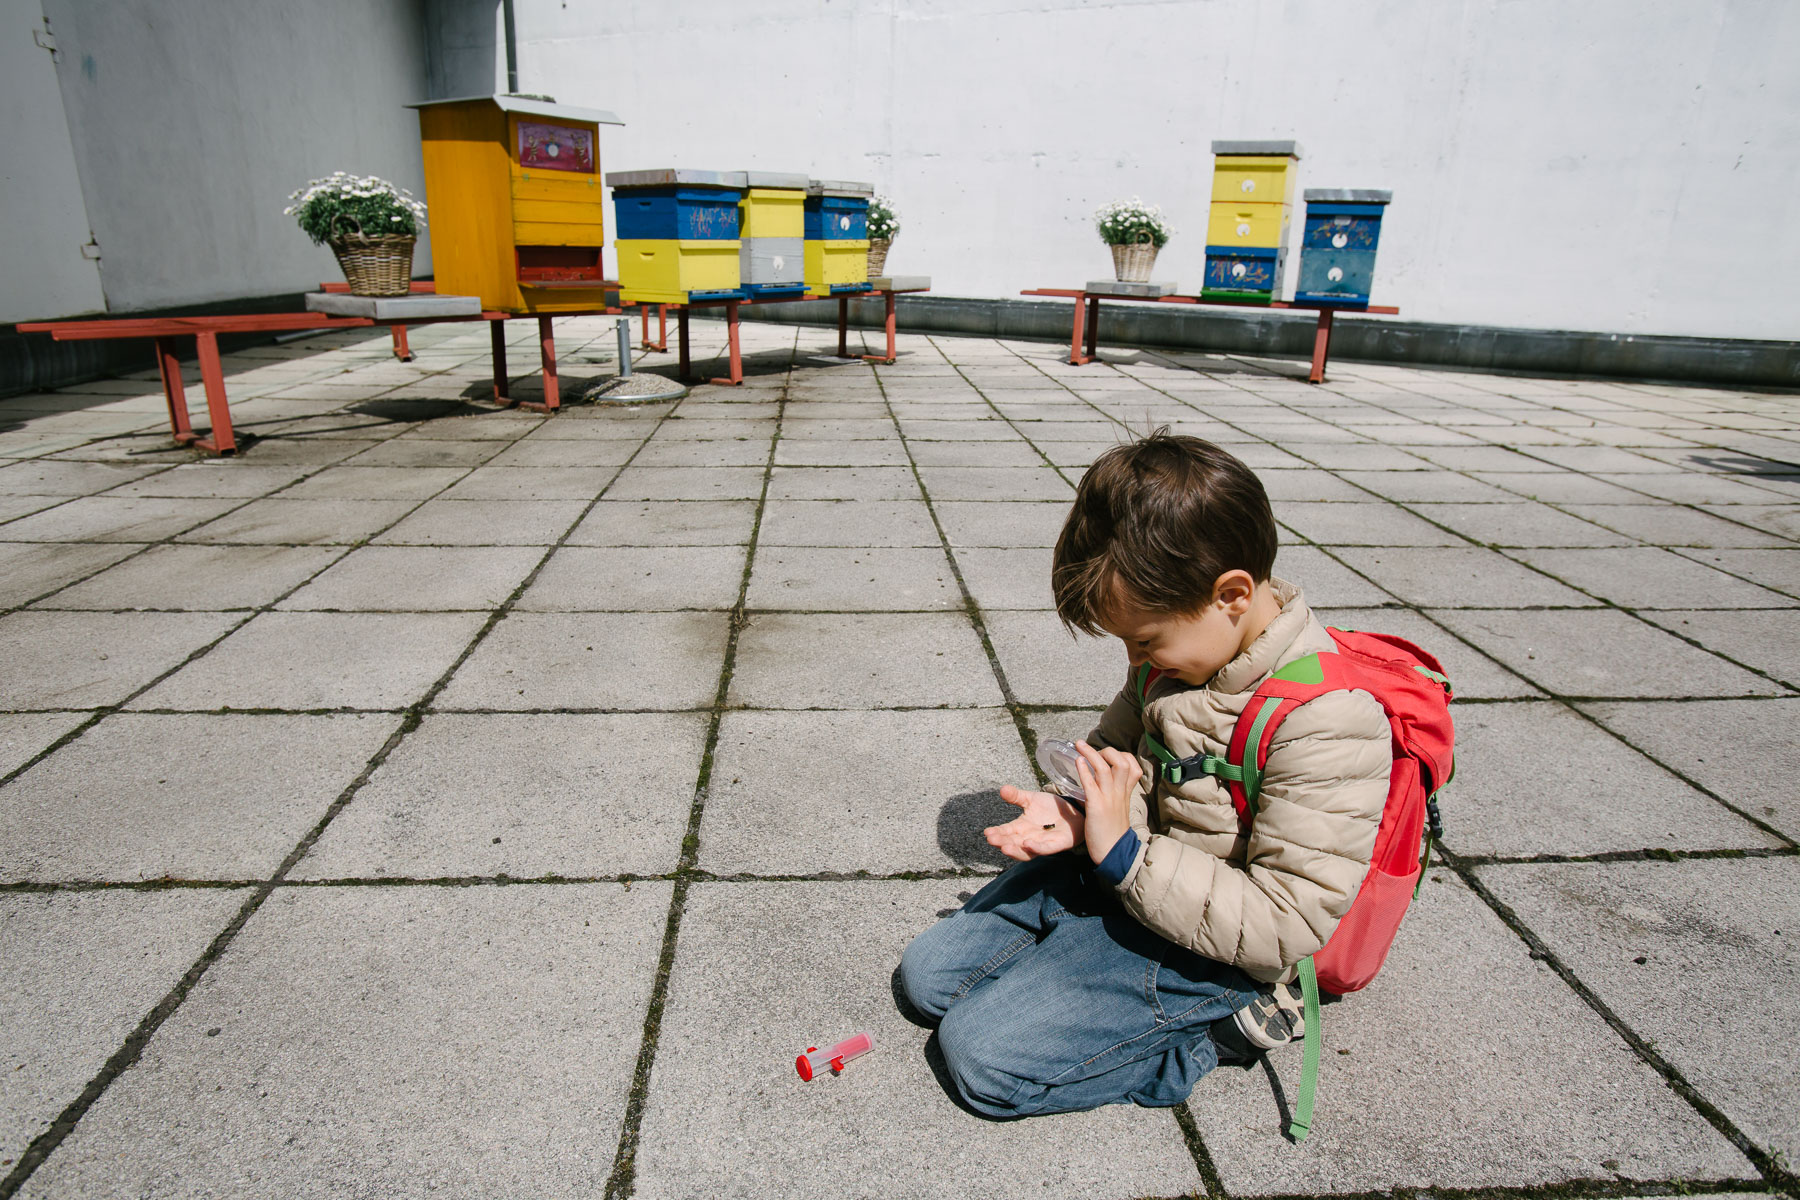 A boy inspects a bee during Petrovčič's presentation on the rooftop of Cankarjev dom Cultural Center.